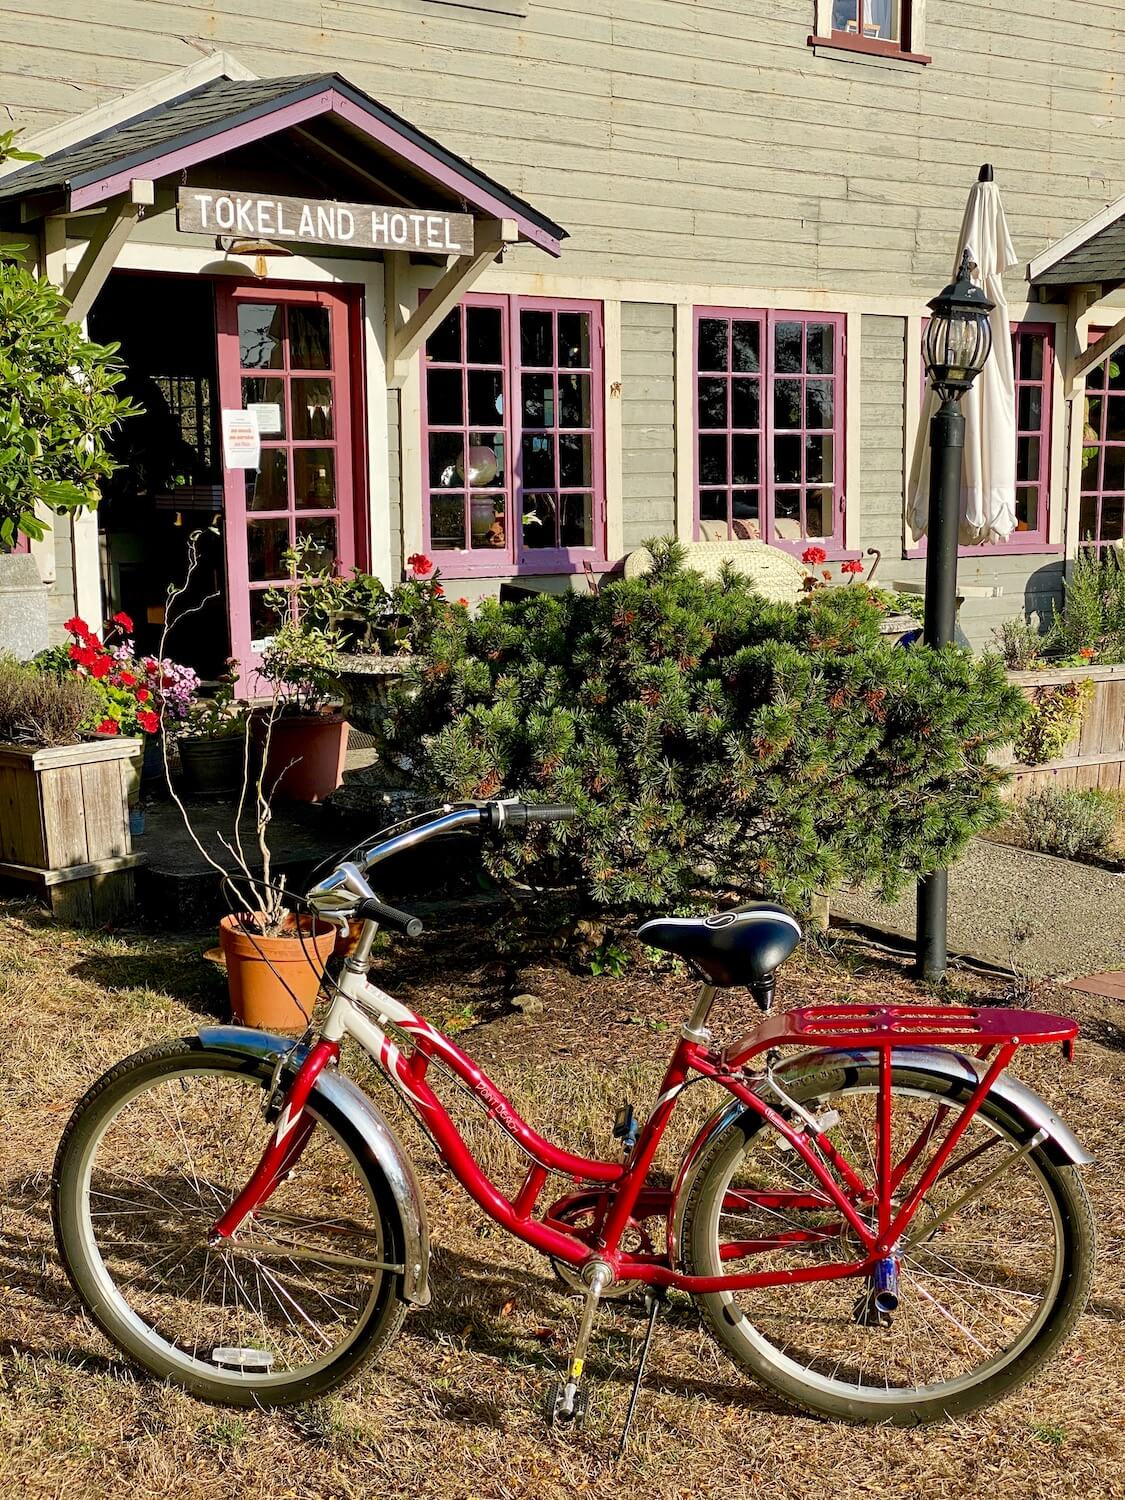 A bright red bicycle sits propped up outside the entrance to the Tokeland Hotel. A board with white letting welcomes guests through the front door and there are several eight paned windows with purple trim along the first floor of the old bundling with wood panel siding.